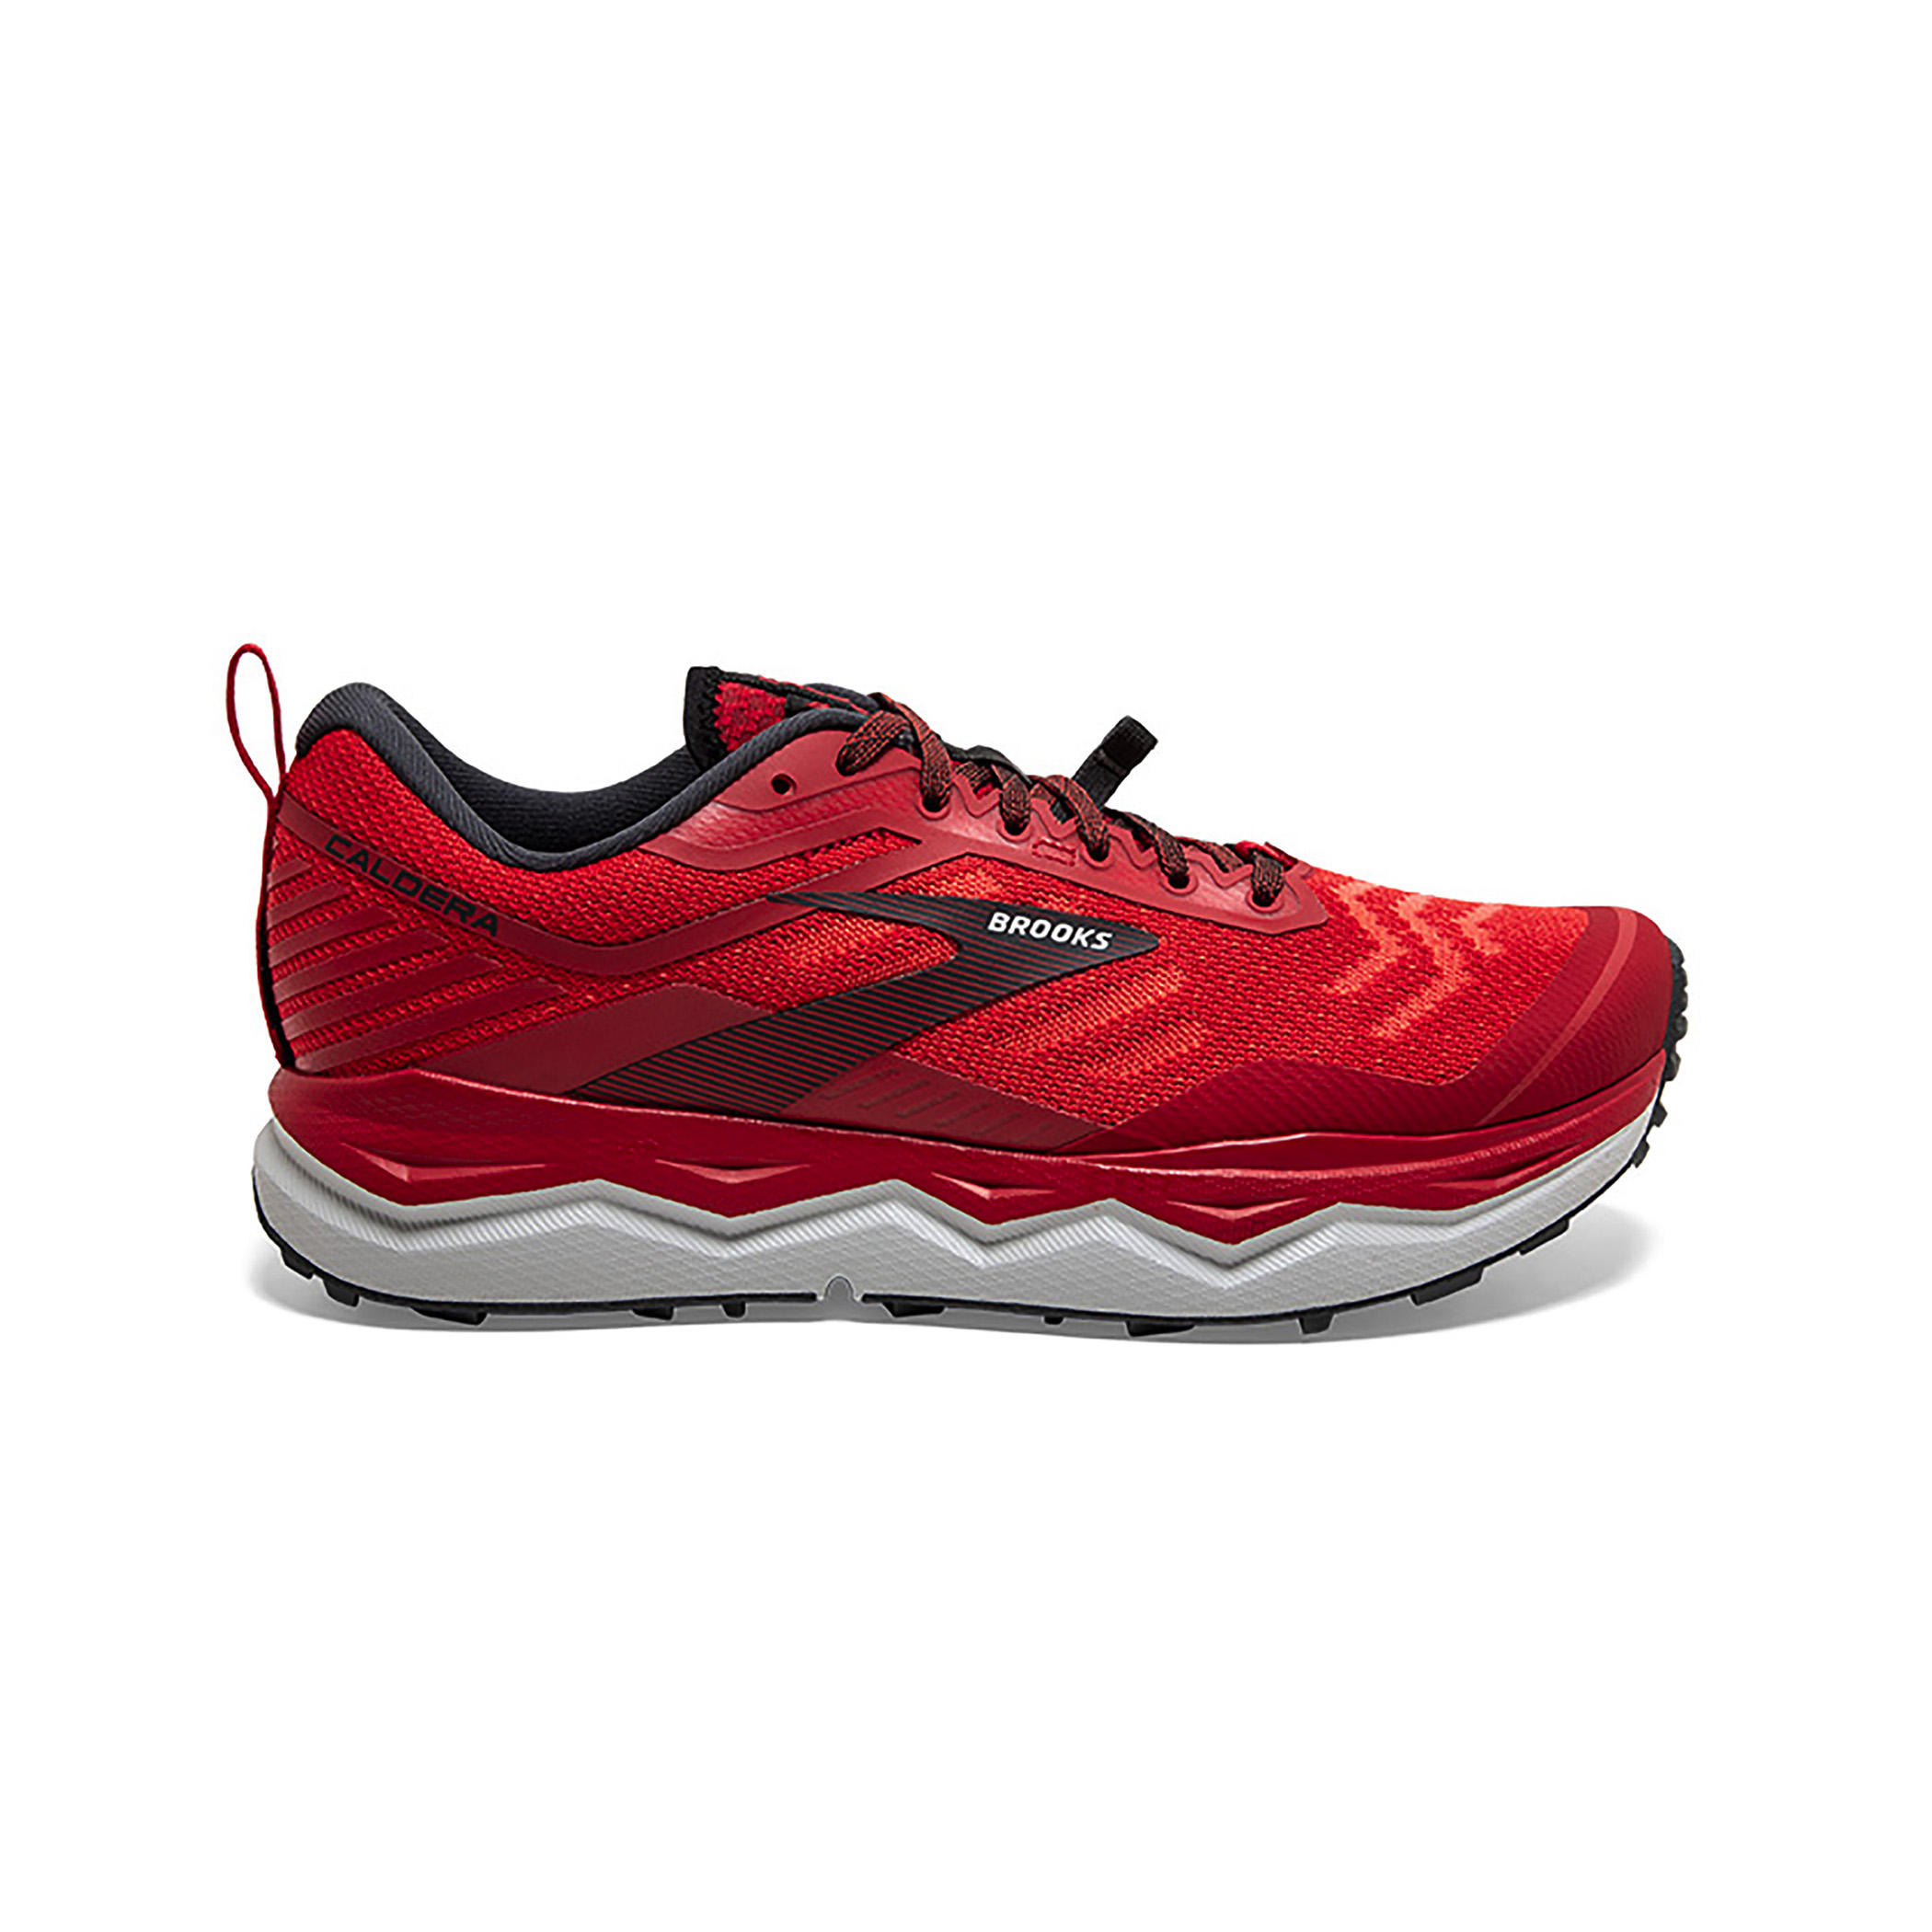 Men's Brooks Caldera 4